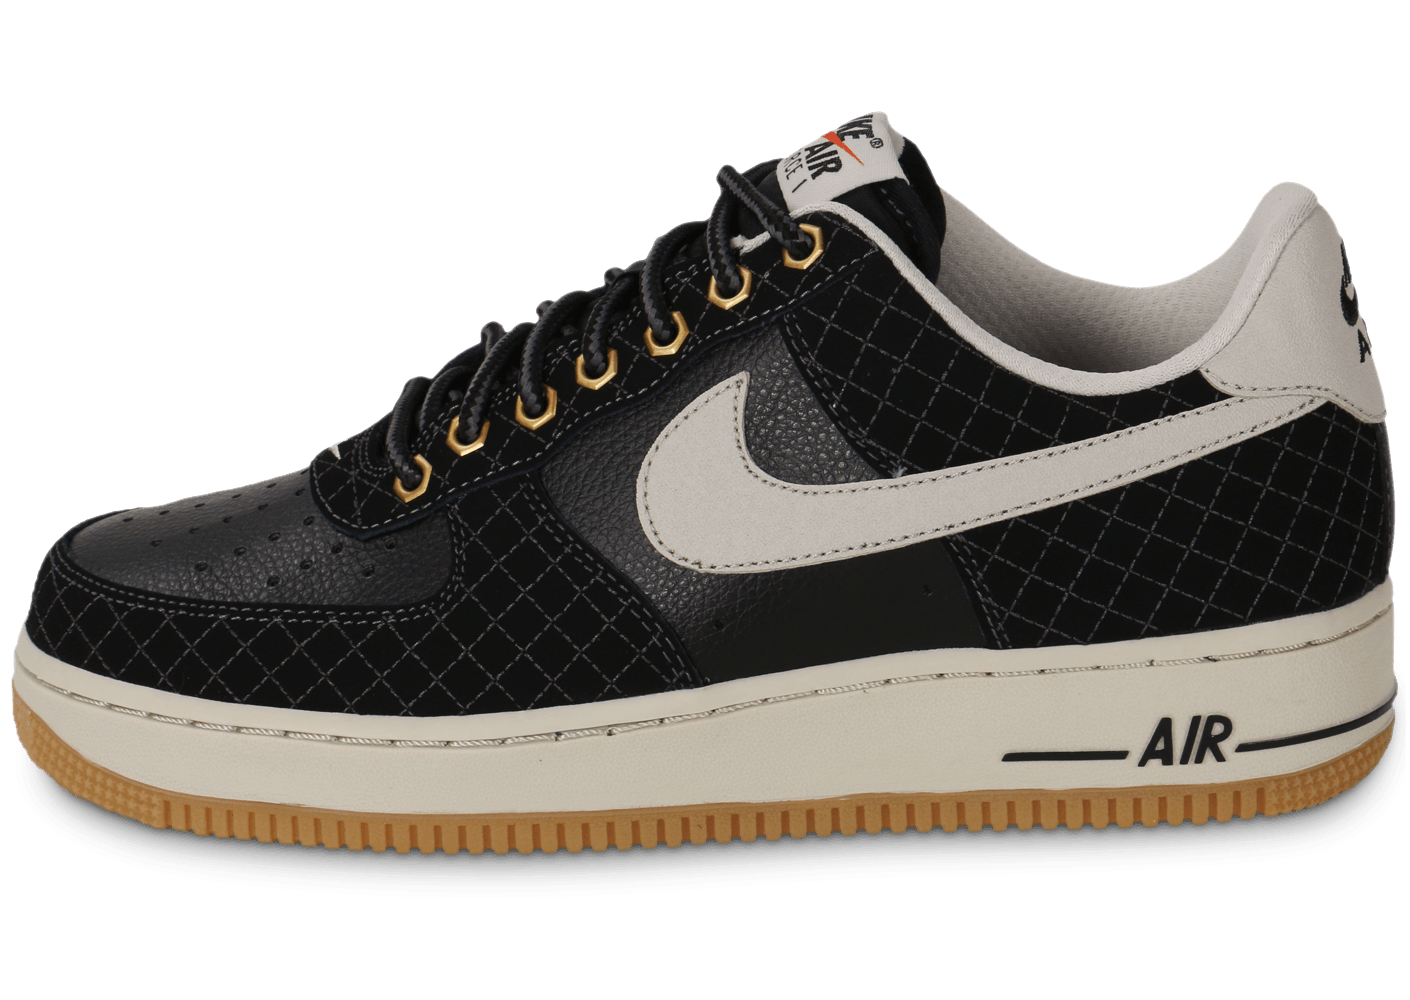 nike air force 1 low noire chaussures homme chausport. Black Bedroom Furniture Sets. Home Design Ideas